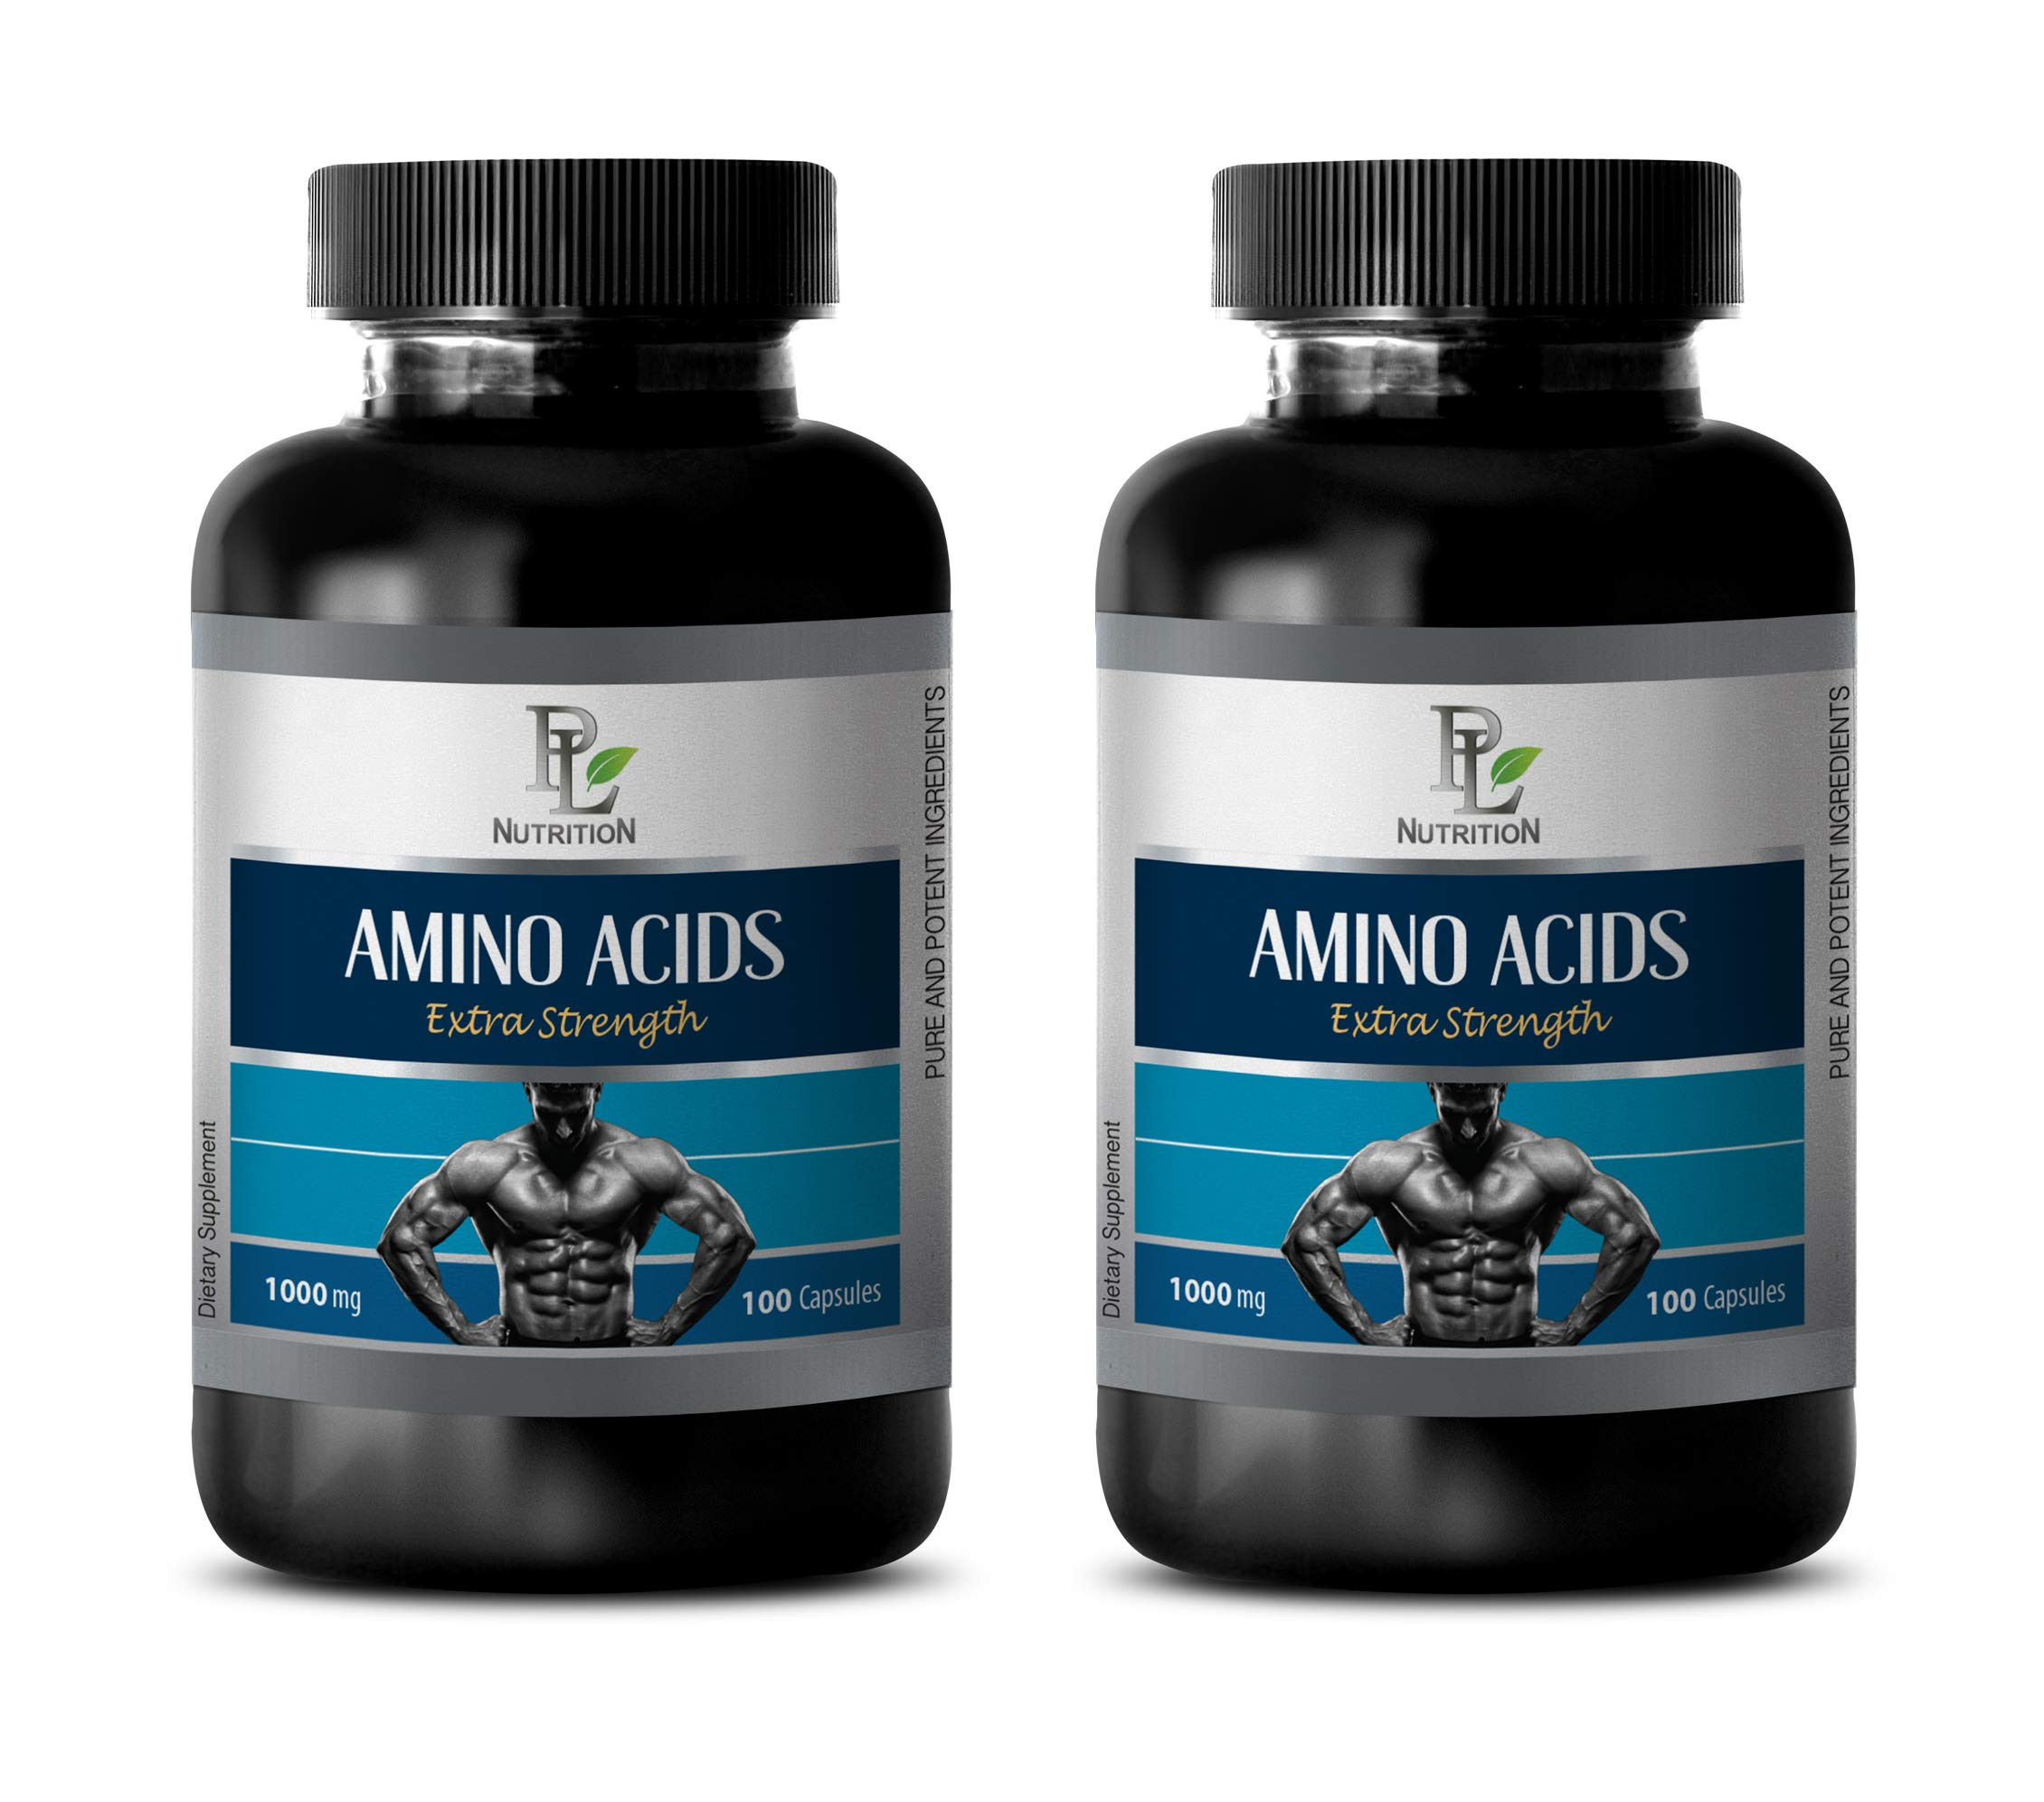 Muscle Booster for Men - Amino ACIDS Extra Strength 1000MG - l-tyrosine l-theanine - 2 Bottles 200 Capsules by PL NUTRITION